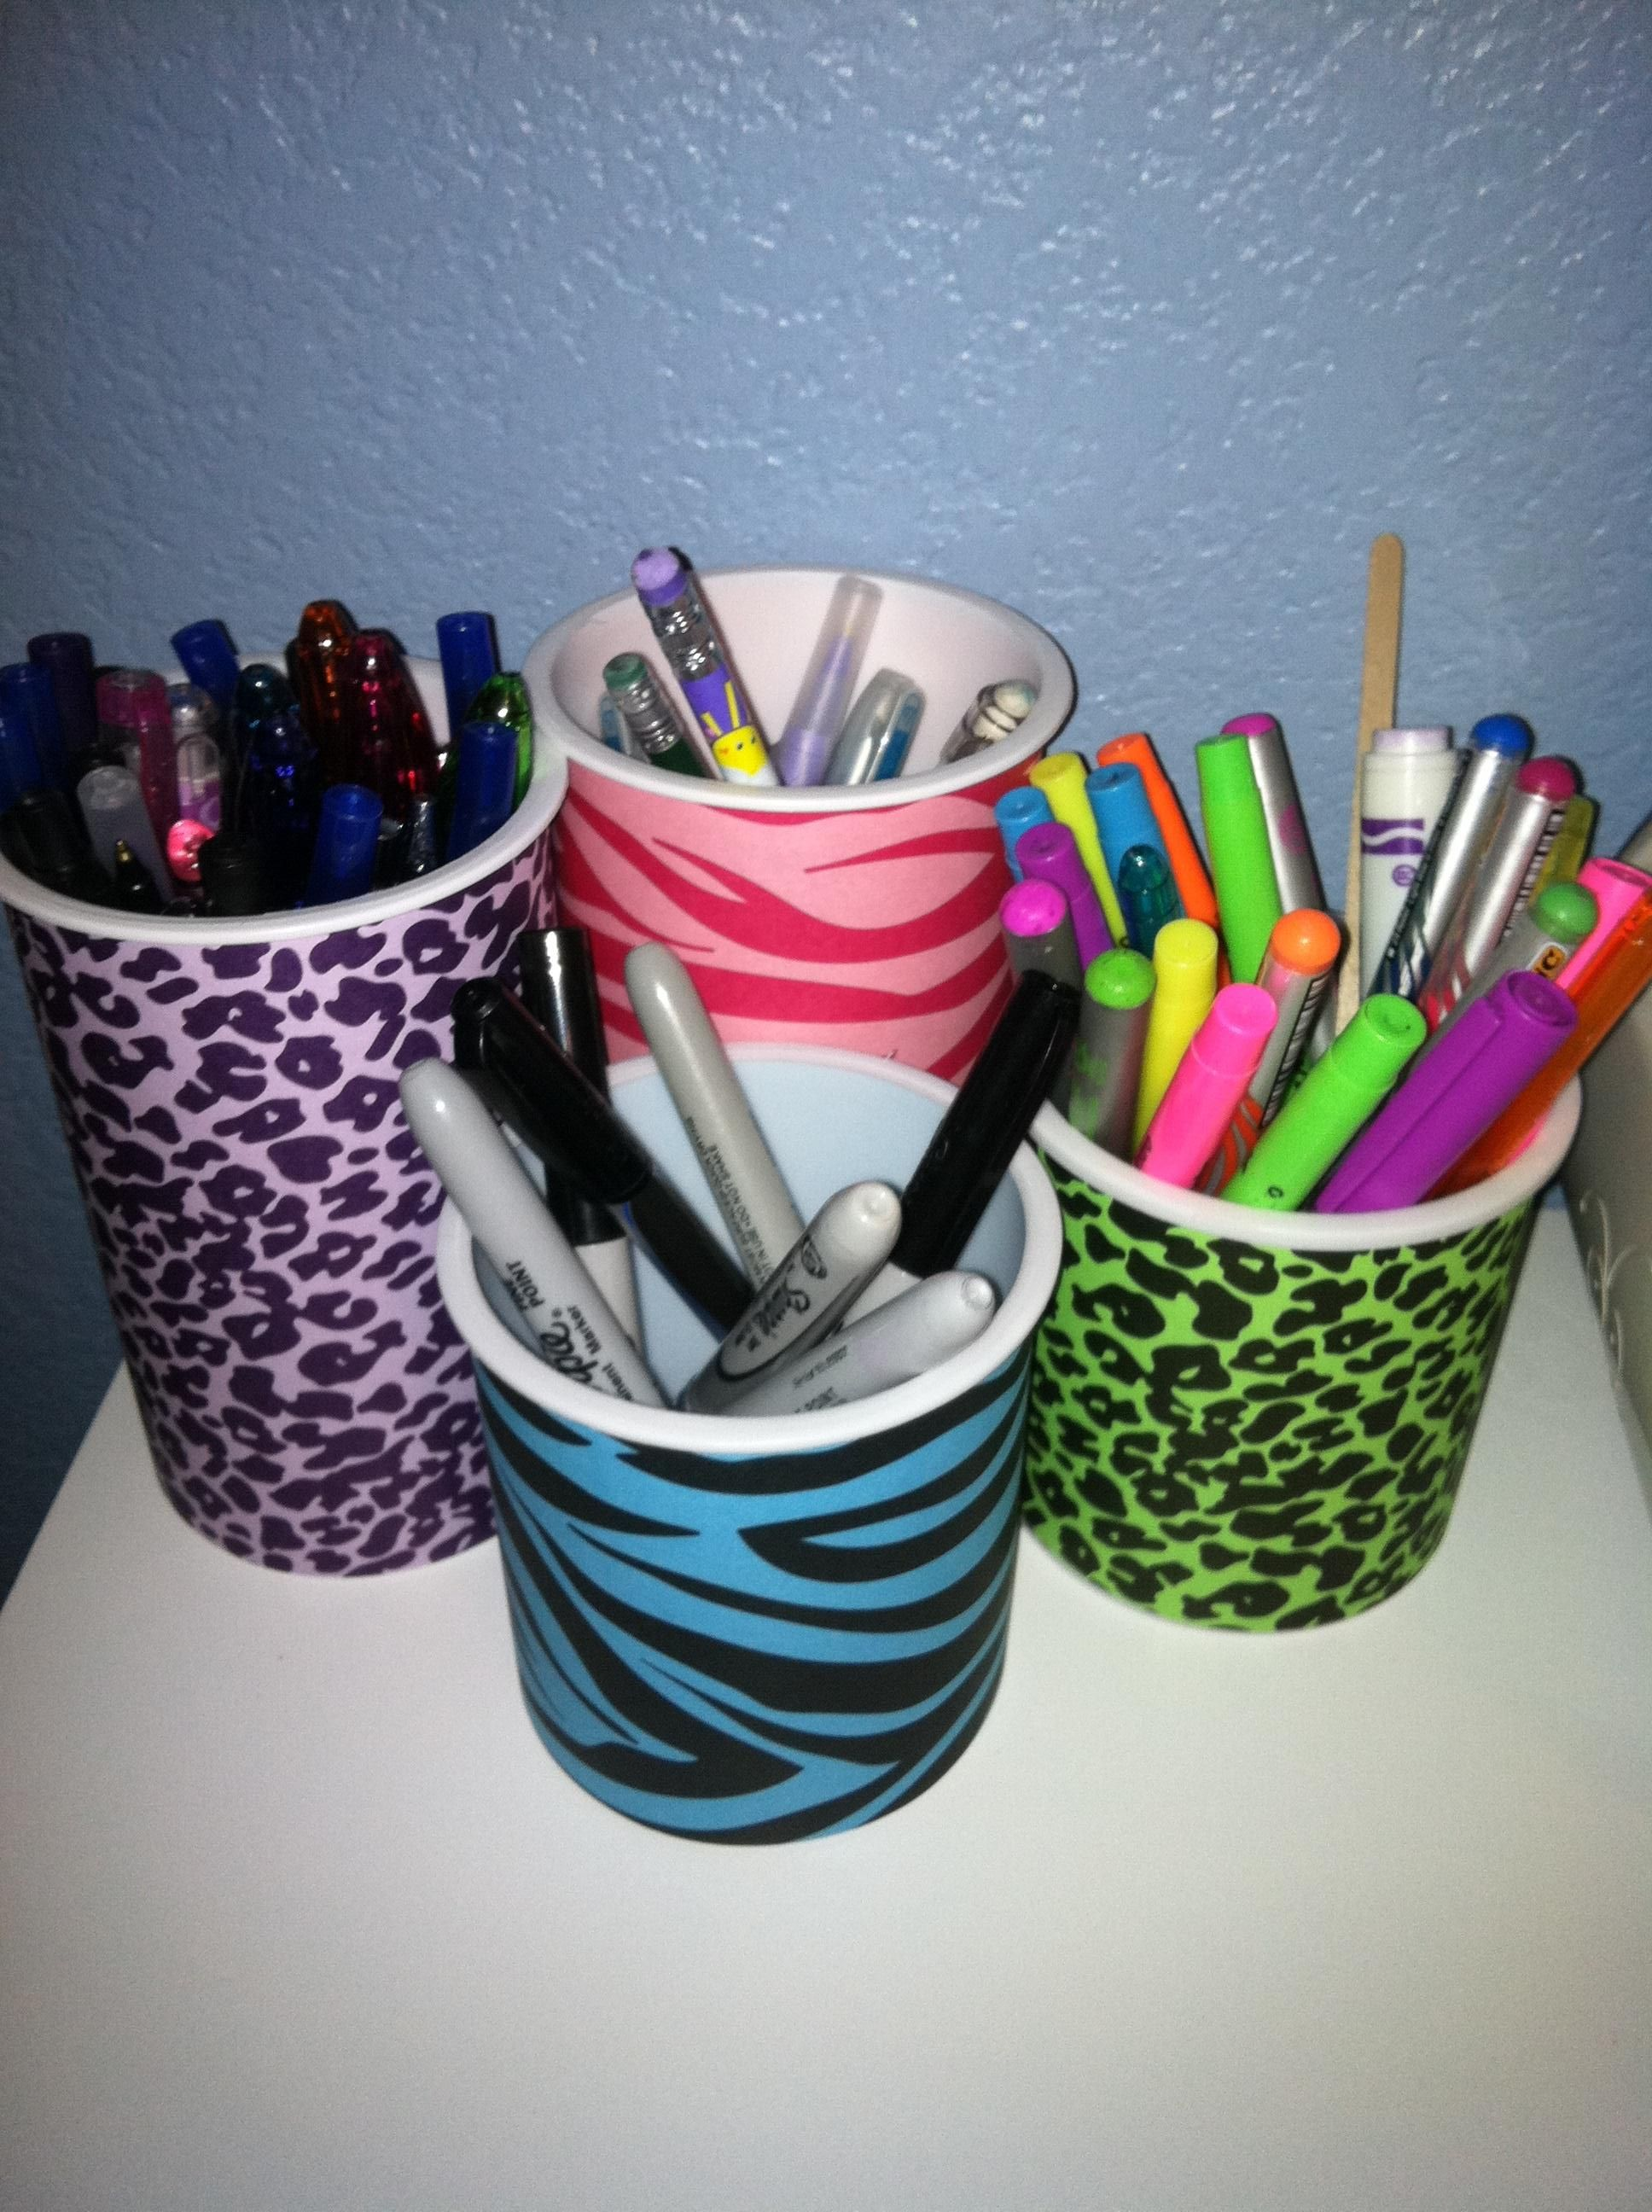 Made Out Of Frosting Containers Colored Paper D It Can Hold Pencils Pens Crayons Markers And If Your Having A P Crafts Recycled Projects Colored Paper